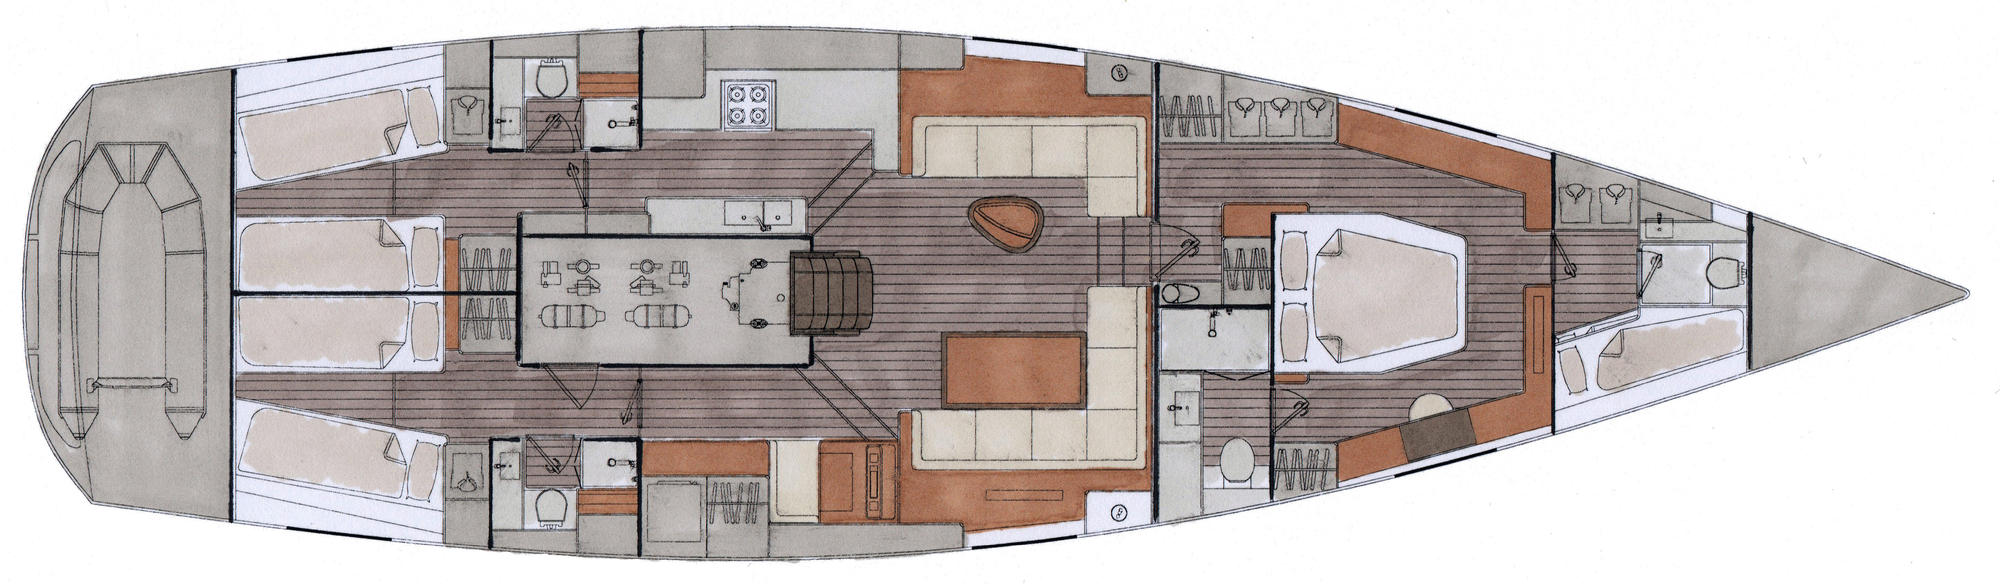 Conyplex Contest 67 CS - contest_67cs_interior_layout_e.jpg